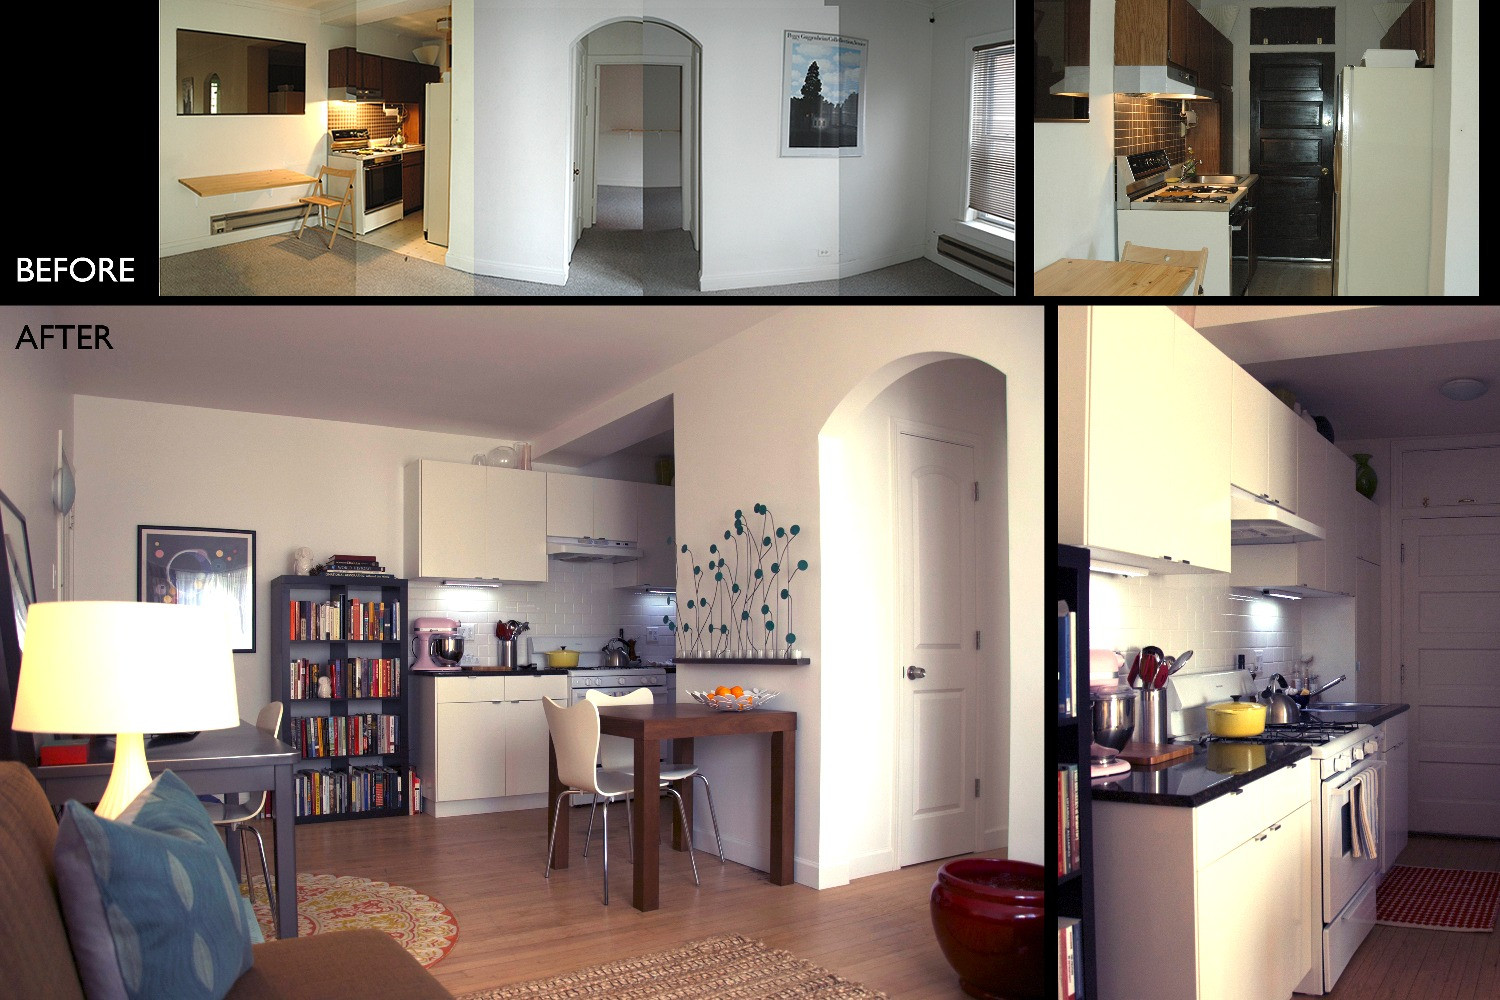 Kitchen _ Before and After